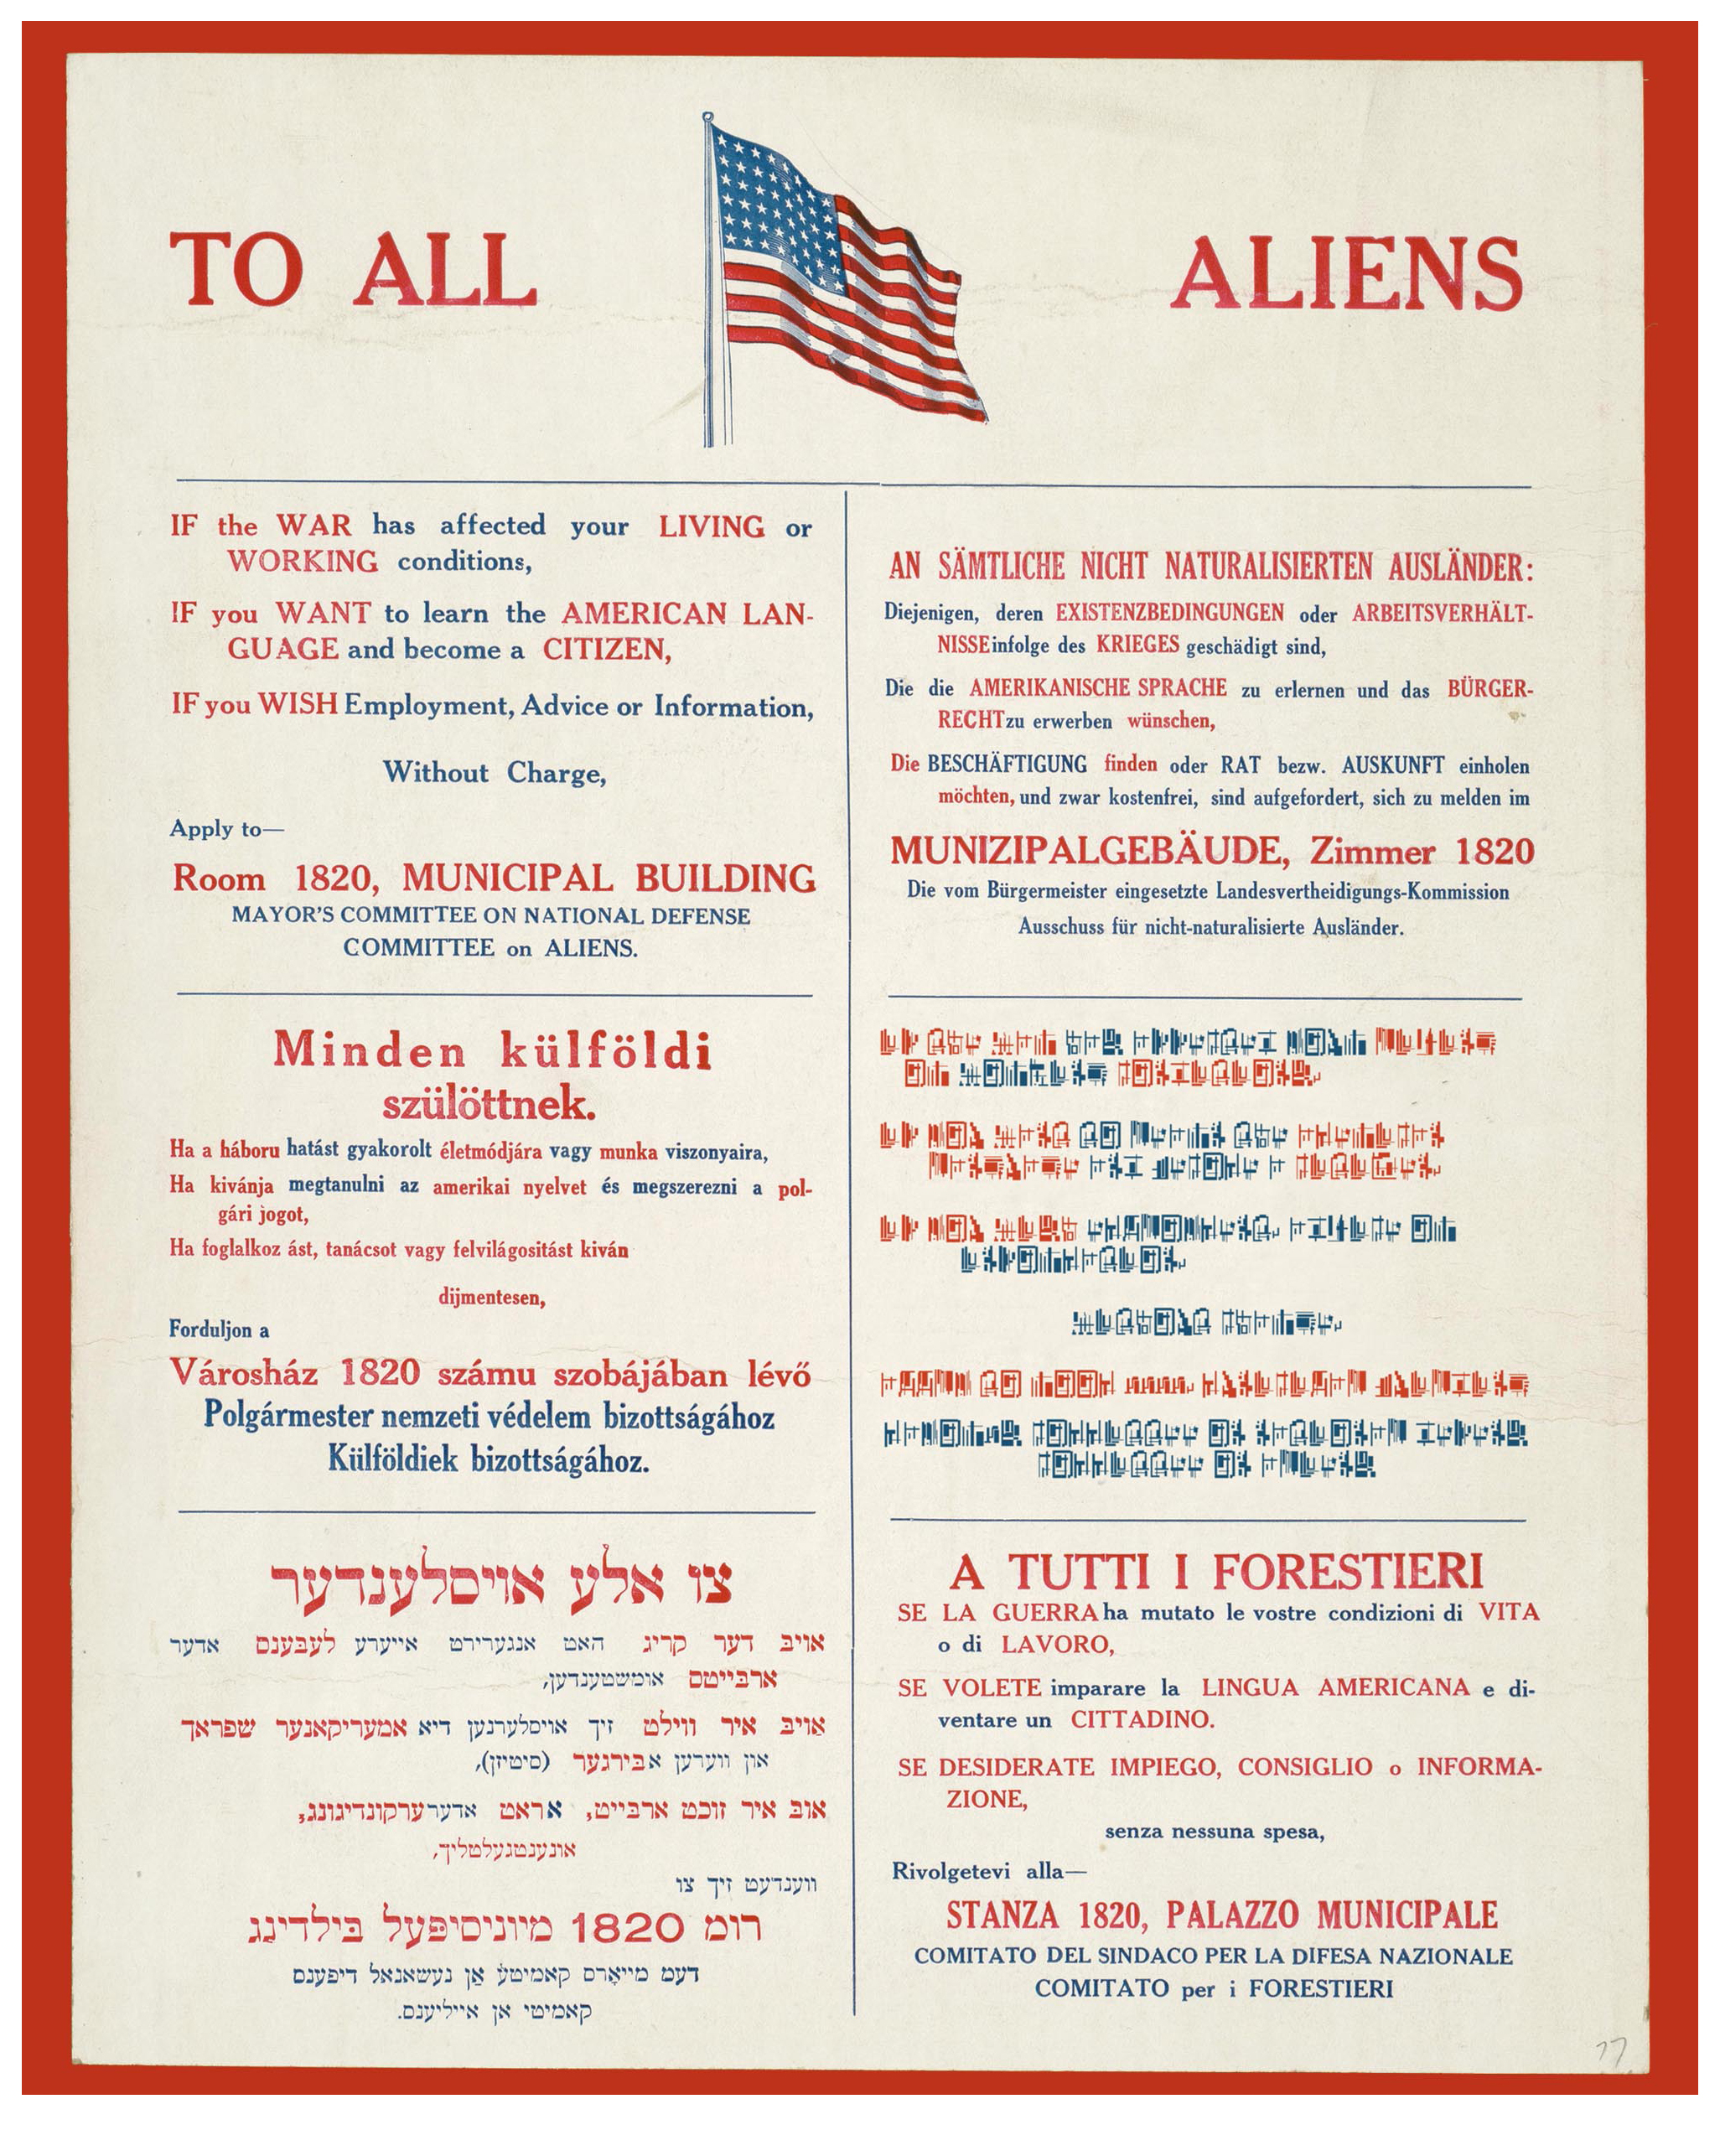 "Contrary to the welcoming spirit of this poster {as elucidated by   Matthew Buchholz  , curator of   Alternate Historie s    from whence this specimen is on kind loan}, the United States actually enacted sweeping reforms against aliens in 1917 with the passage of the Immigration Act. This oppressive legislation included a language test for anyone over the age of sixteen, severely restricted émigrés from the Orient, and barred everyone from 'anarchists' to persons convicted of a crime of ""moral turpitude"" {coded language referring to the sexually inverted}. What is significant about this poster is to whom it appeals; with the same message repeated in English, German, Hungarian, Martian, Yiddish, and Italian, the intent is clear: only 'white' ethnic groups and Martians need apply. Although controversial at the time, the inclusion of Martians in this group was a conscious decision by President Woodrow Wilson and Congress to appeal to the aliens in the hopes of gaining access to their superior technology. Not surprisingly, there is no record of a Martian ever applying for U.S. citizenship.     Normal   0           false   false   false     EN-US   X-NONE   X-NONE                                                                                                                                                                                                                                                                                                                                                                    /* Style Definitions */  table.MsoNormalTable 	{mso-style-name:""Table Normal""; 	mso-tstyle-rowband-size:0; 	mso-tstyle-colband-size:0; 	mso-style-noshow:yes; 	mso-style-priority:99; 	mso-style-parent:""""; 	mso-padding-alt:0in 5.4pt 0in 5.4pt; 	mso-para-margin-top:0in; 	mso-para-margin-right:0in; 	mso-para-margin-bottom:10.0pt; 	mso-para-margin-left:0in; 	line-height:115%; 	mso-pagination:widow-orphan; 	font-size:12.0pt; 	font-family:""Times New Roman"",""serif"";}"